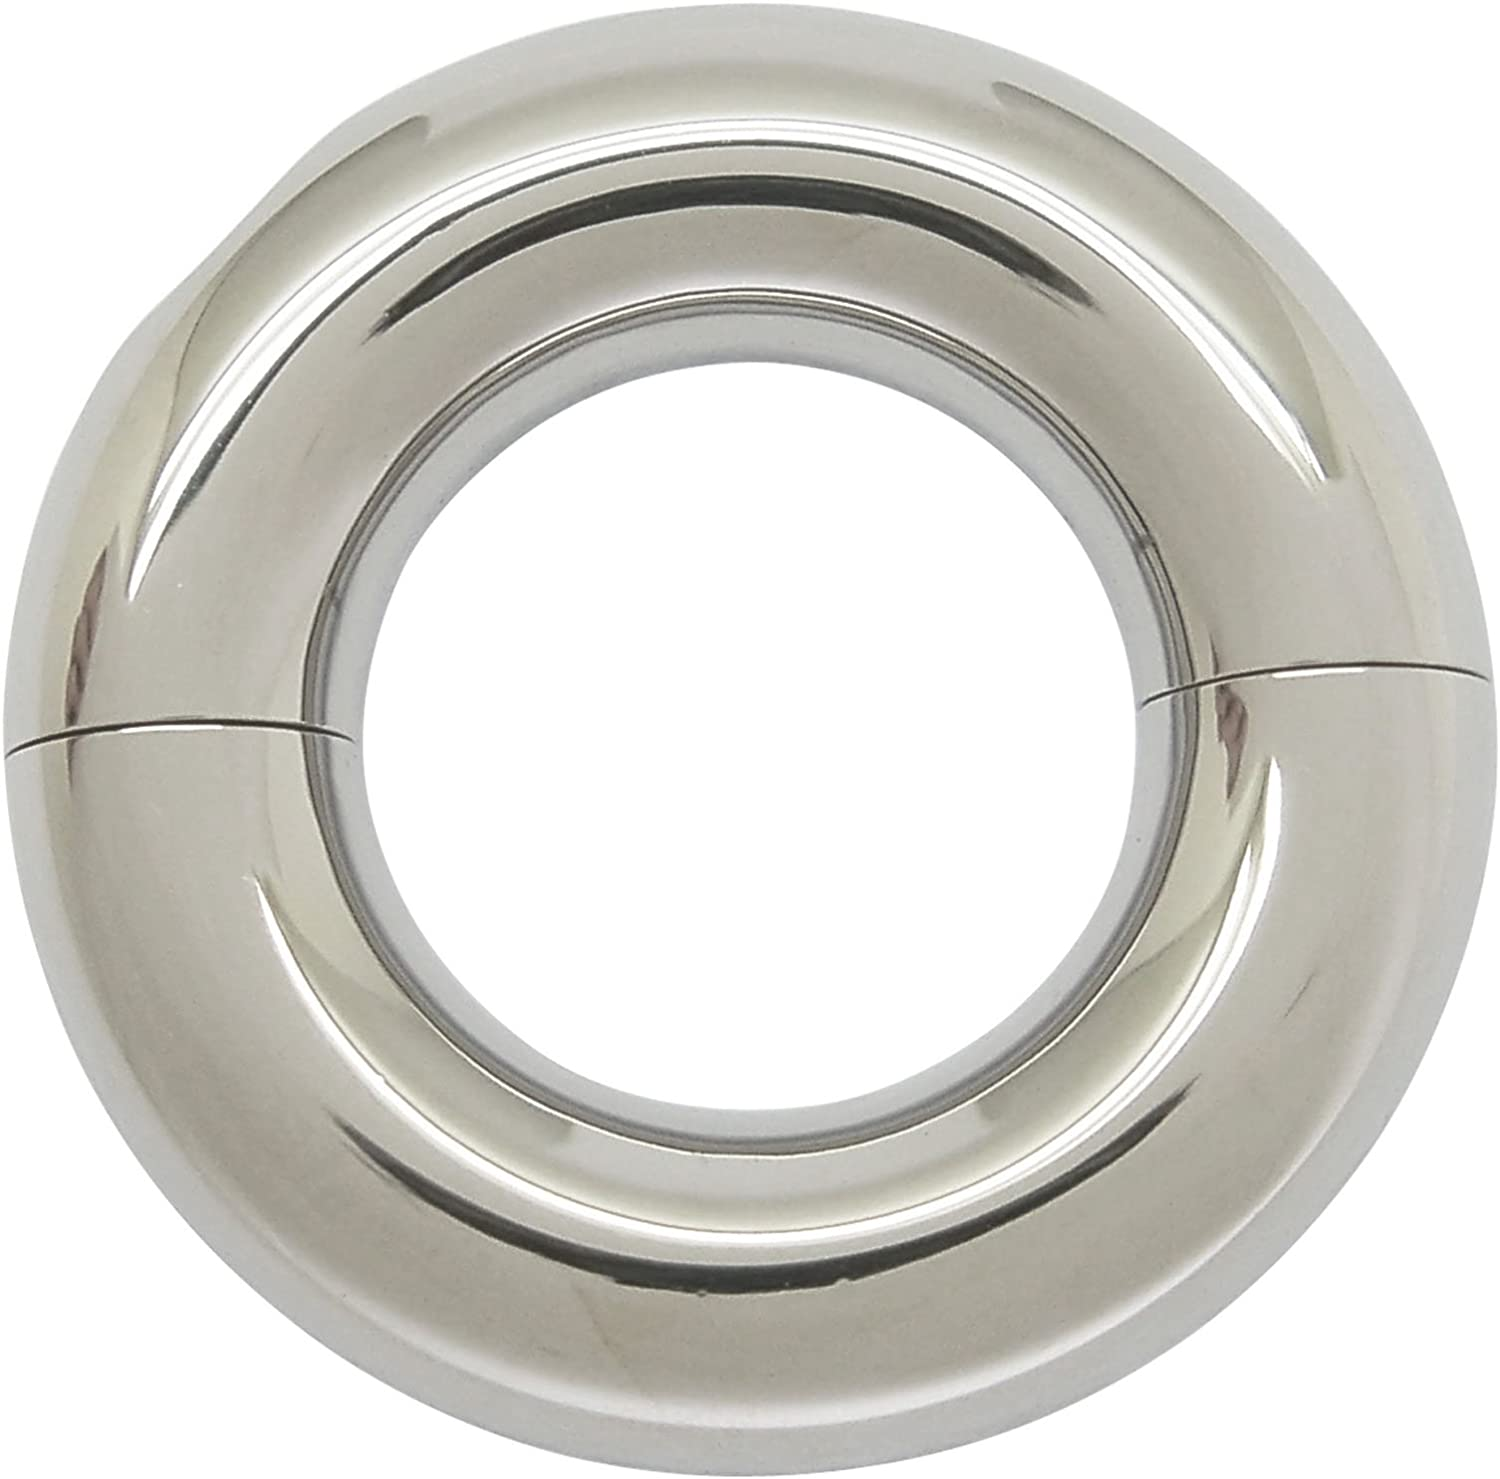 ACESTEEL 316L Surgical Stainless Steel Body Piercing Jewelry Tribal Dream Ring 7mm